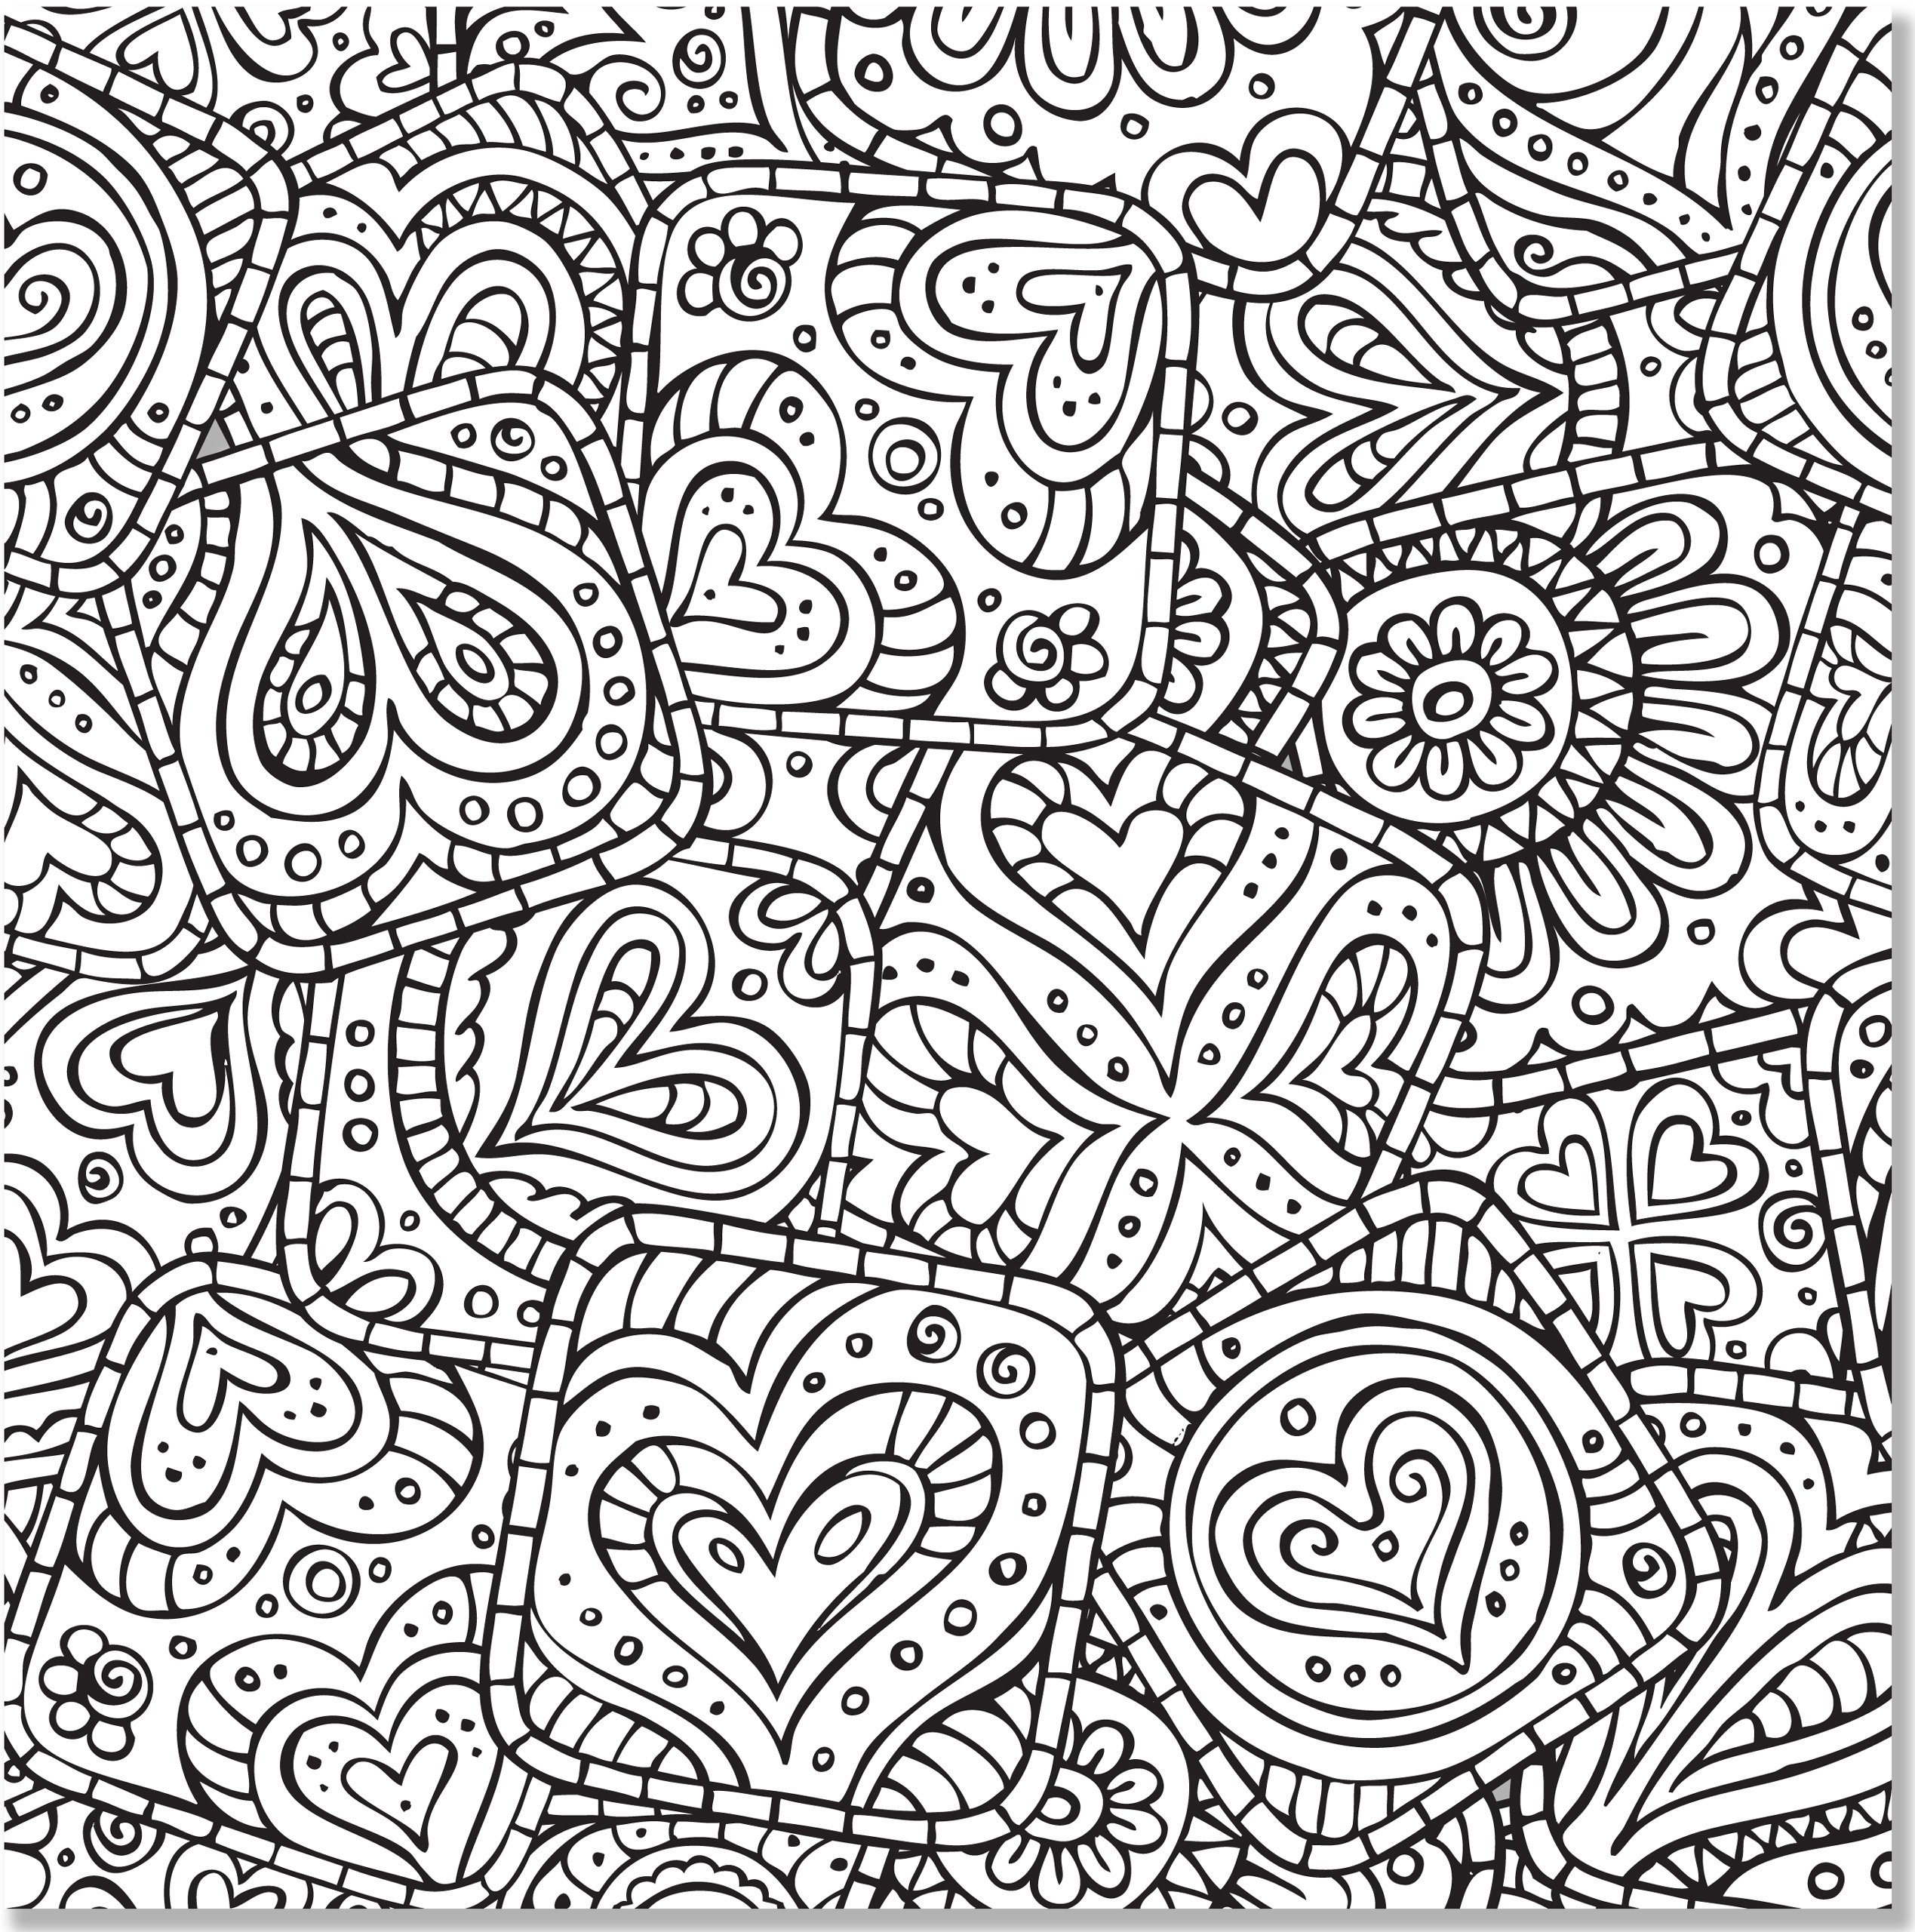 Doodle coloring pages to download